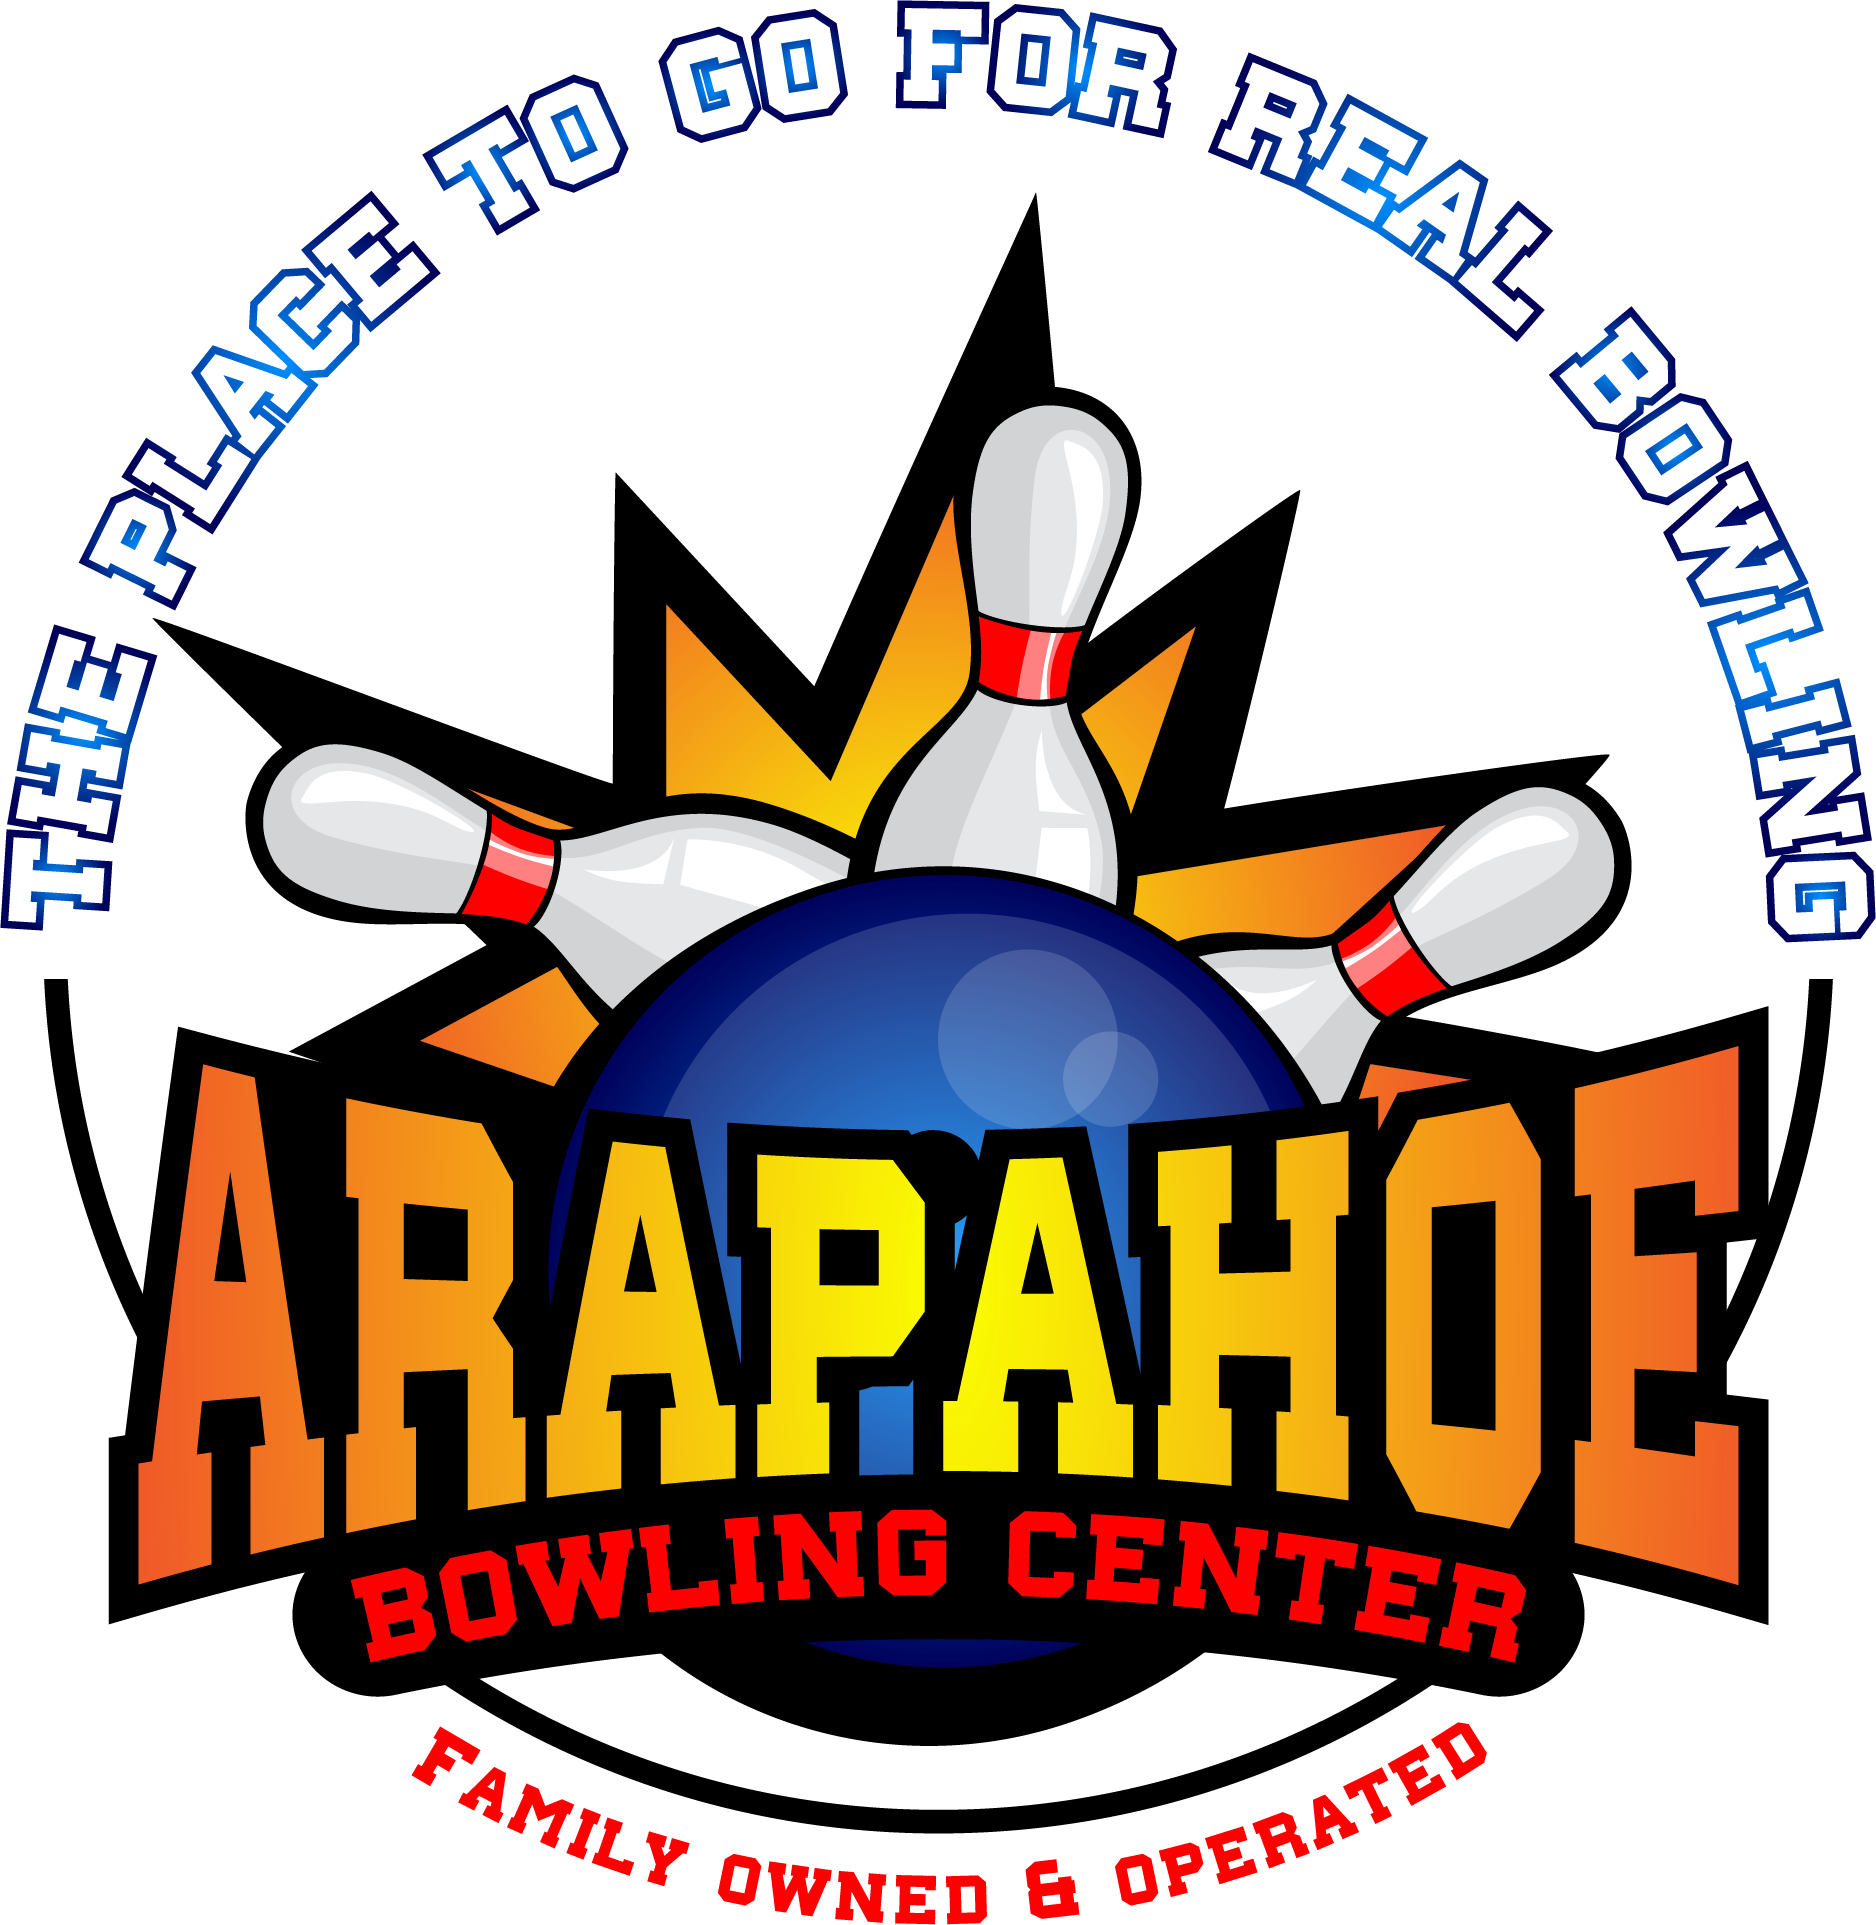 Floor clipart bowling party bowling. Arapahoe center the place